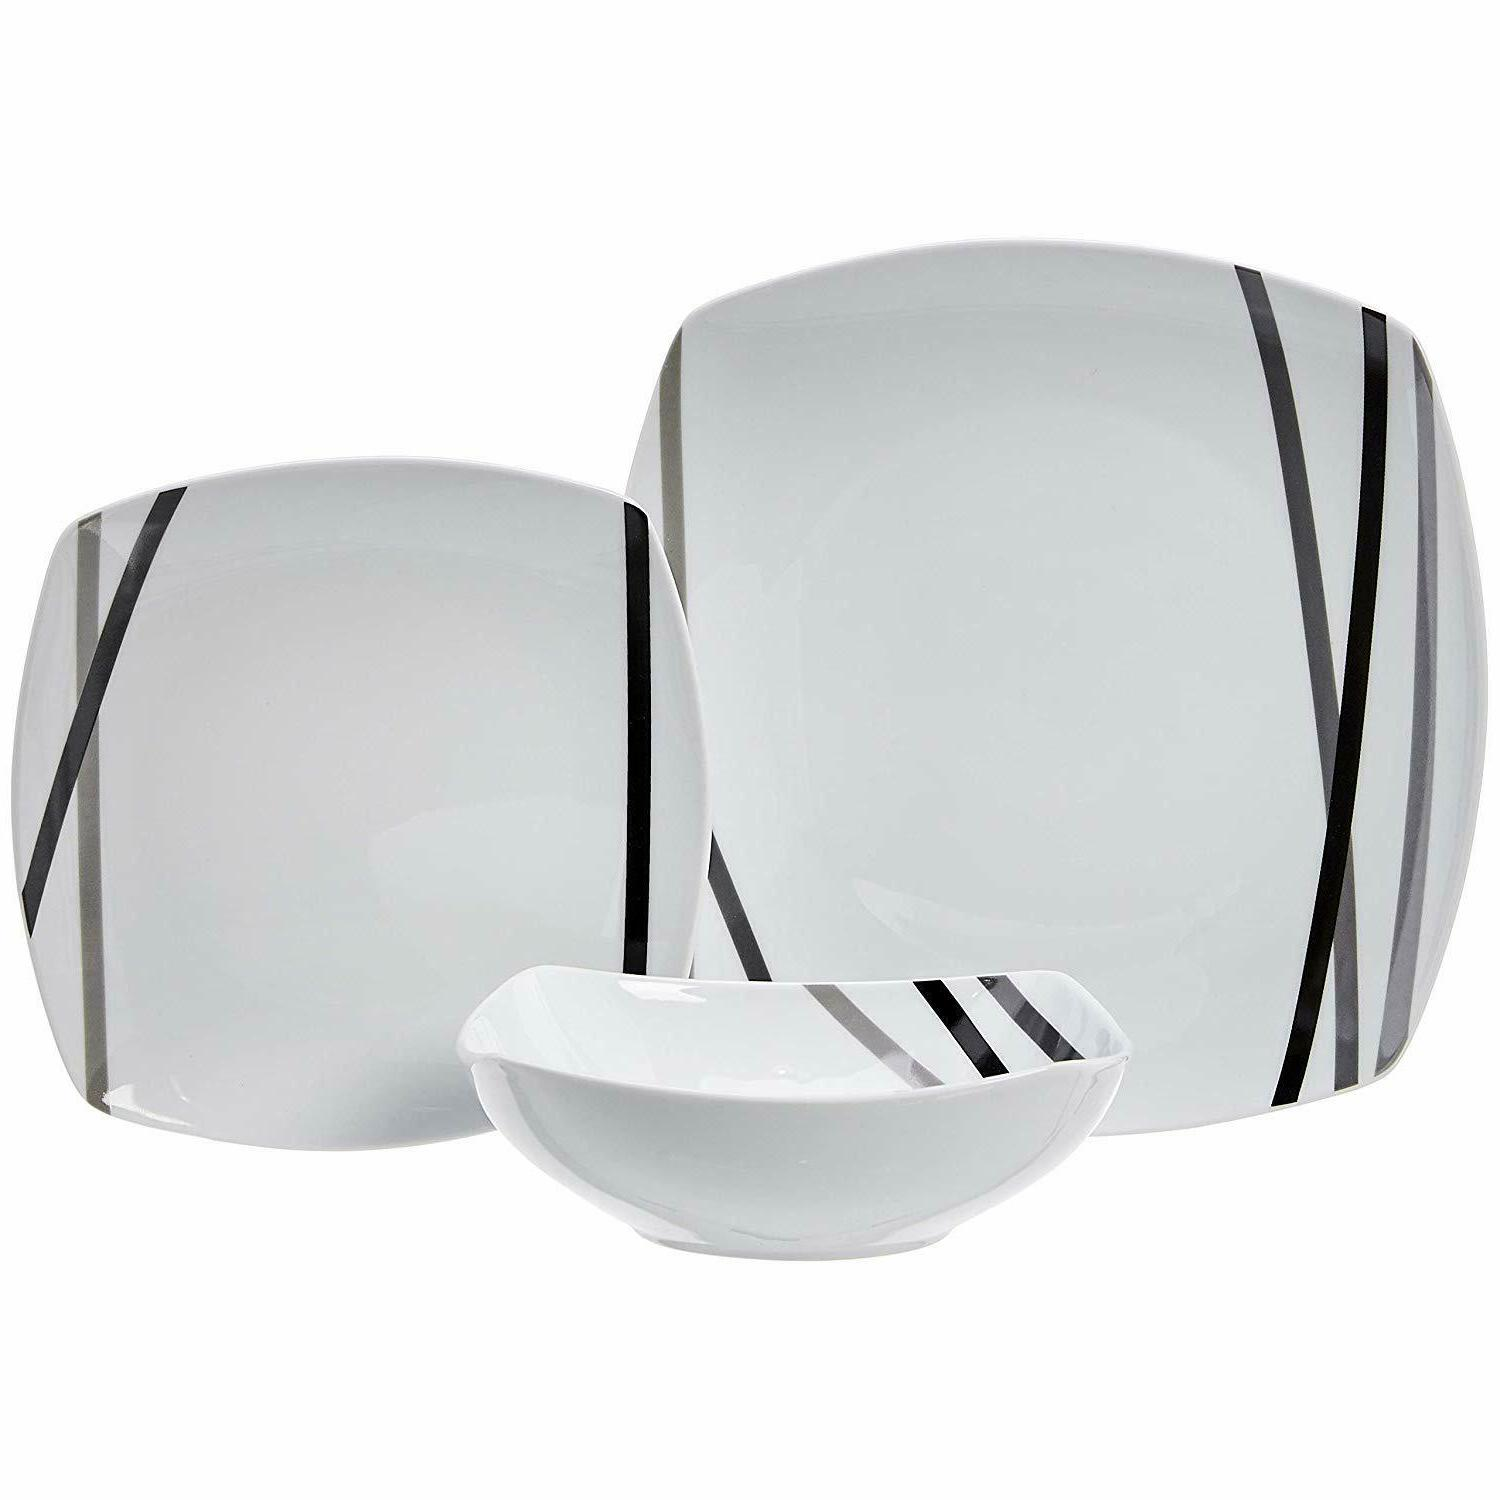 AmazonBasics Dinnerware Service for